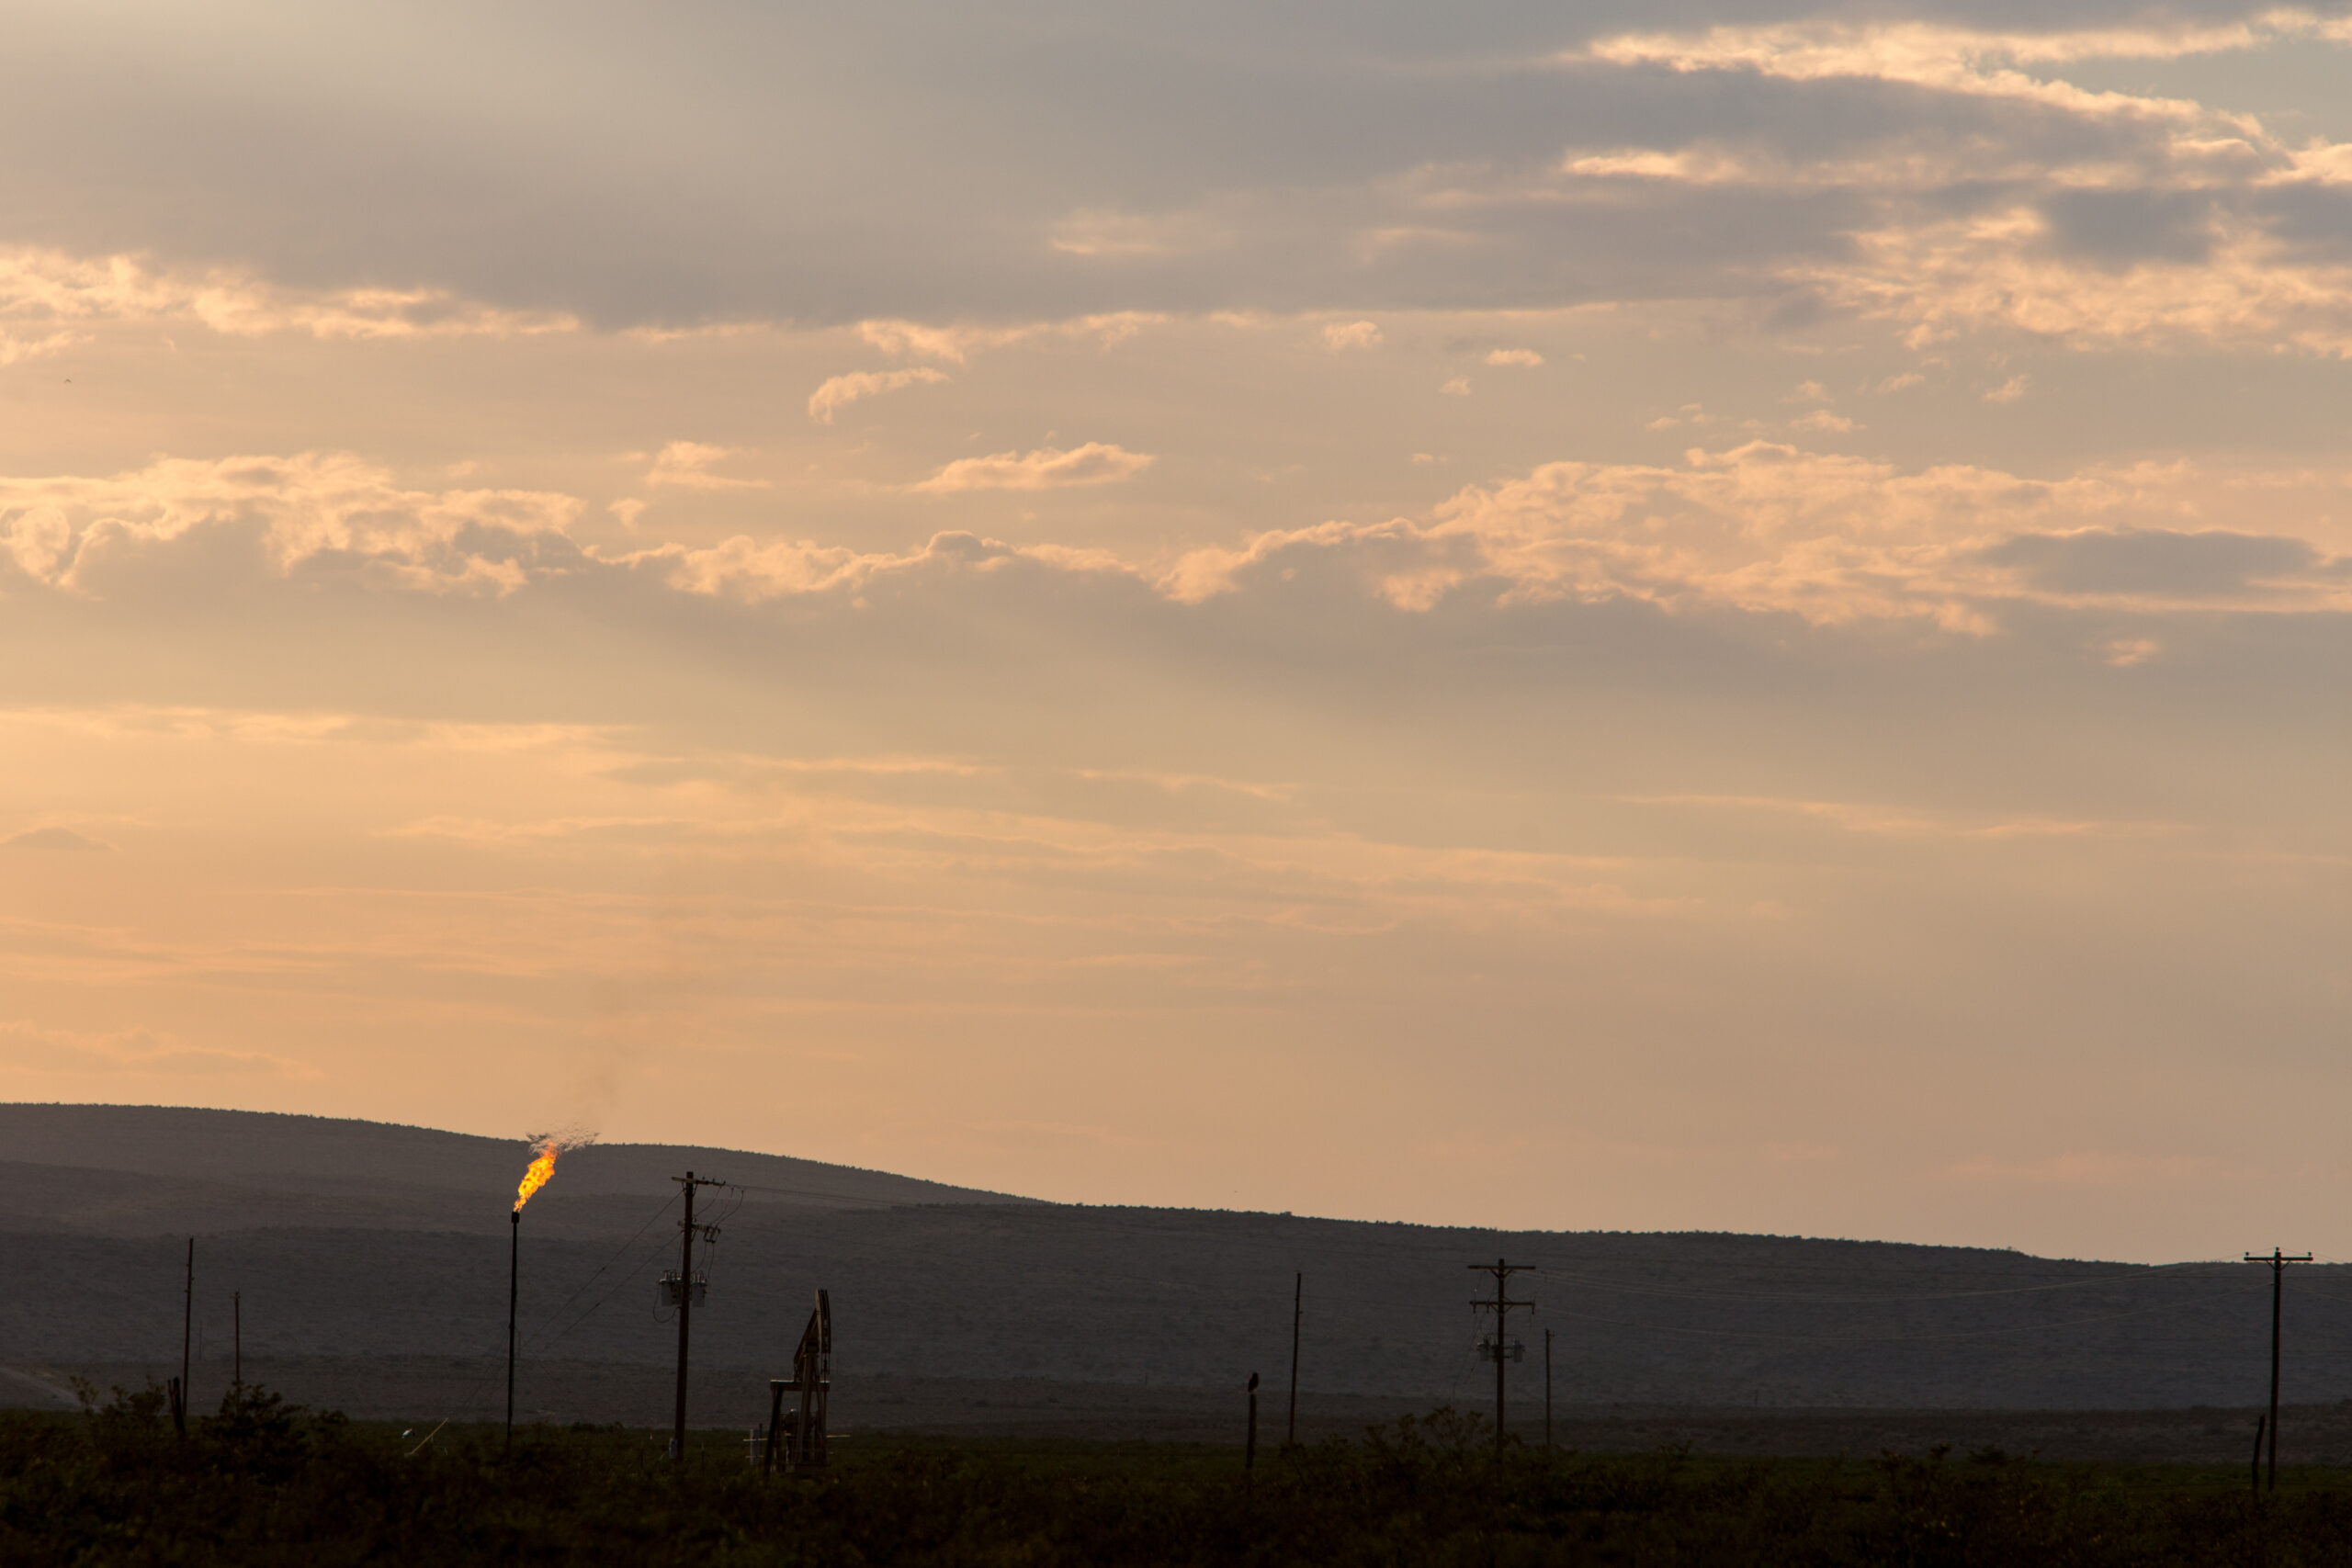 Methane gas is flared just off U.S. Route 285 near Carlsbad, New Mexico, on Tuesday, Aug. 6. 2019. Credit: Steven St John/Bloomberg via Getty Images